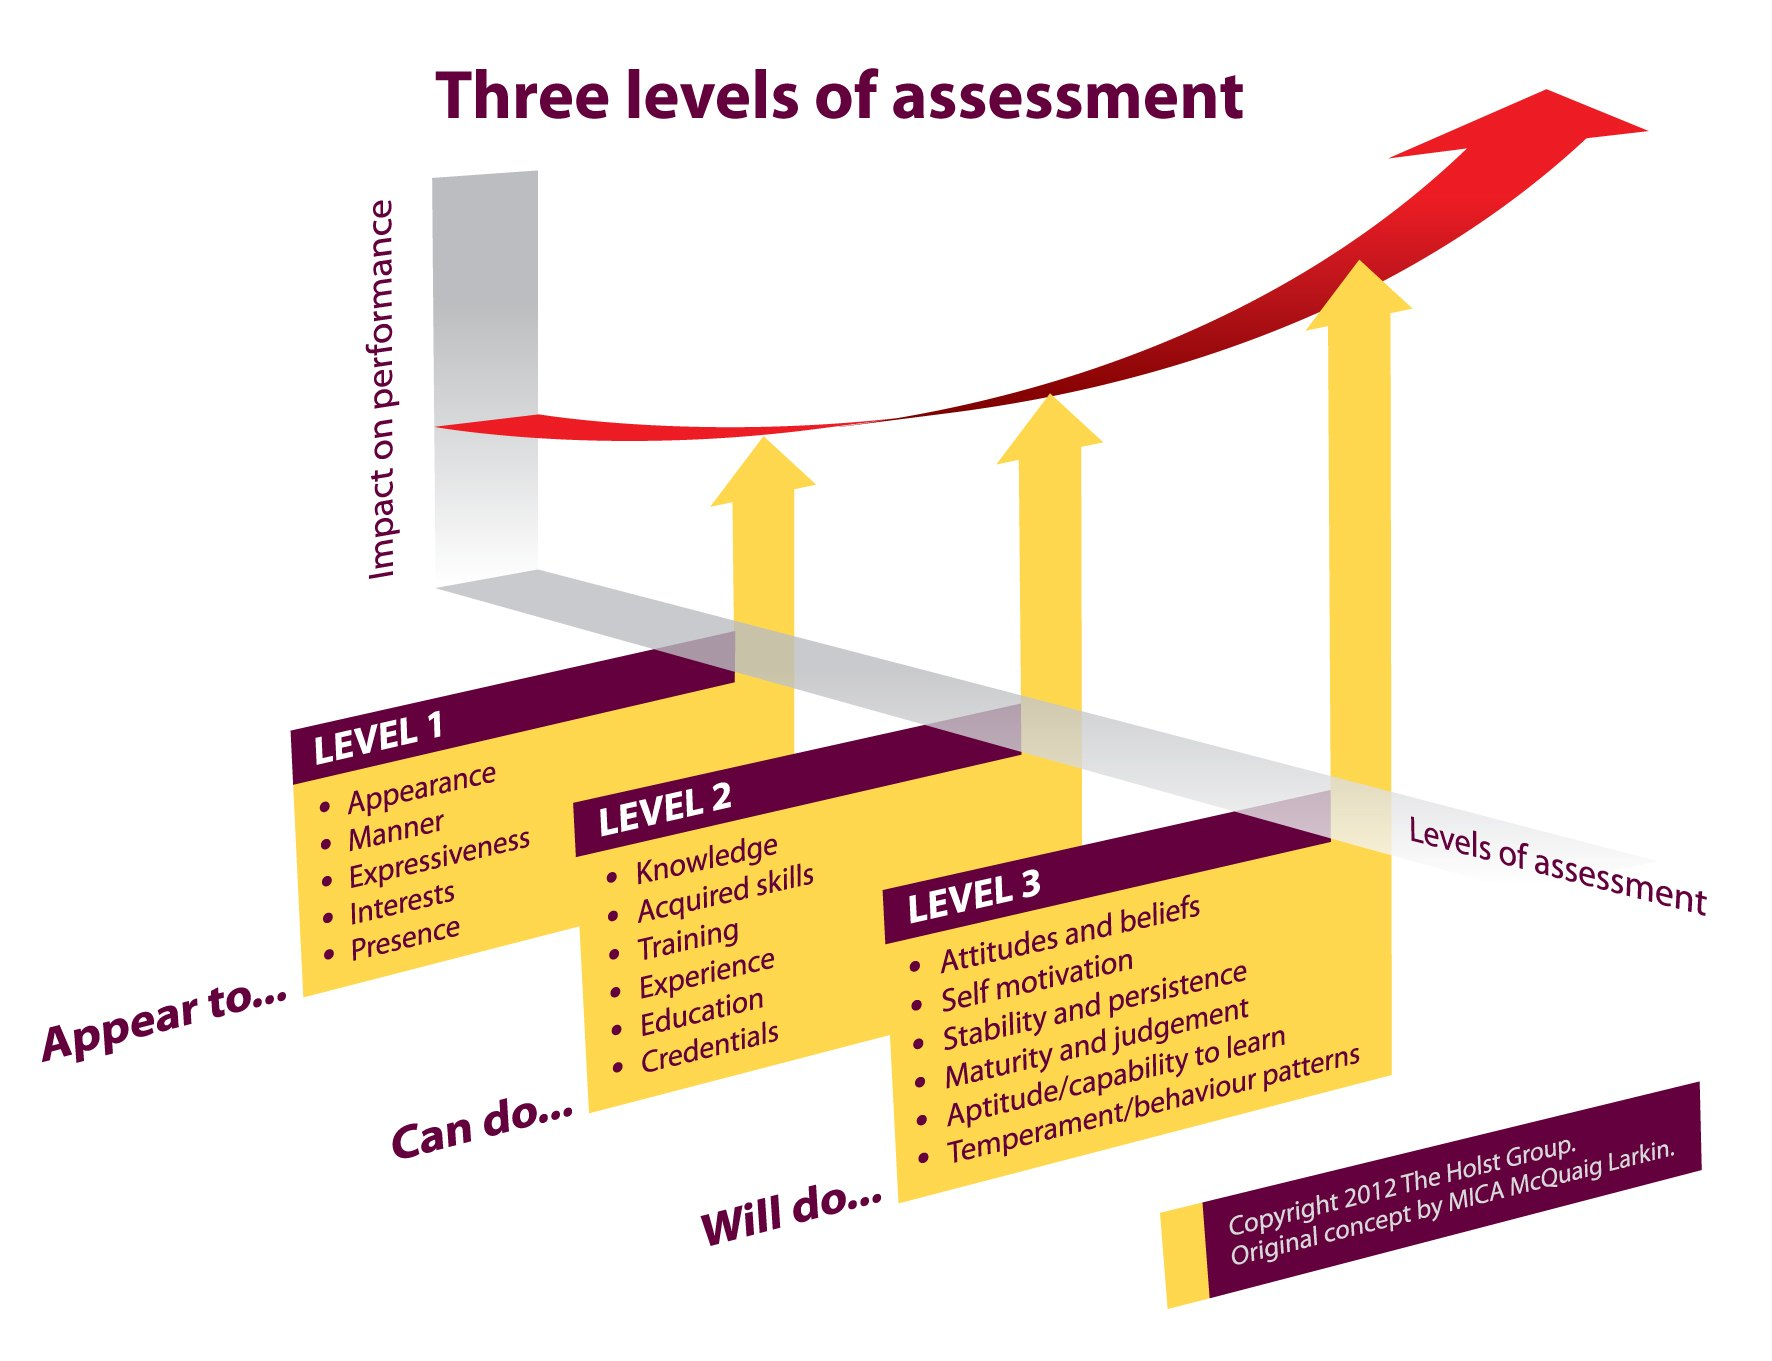 Three levels of assessment from the McQuaig Psychometric System